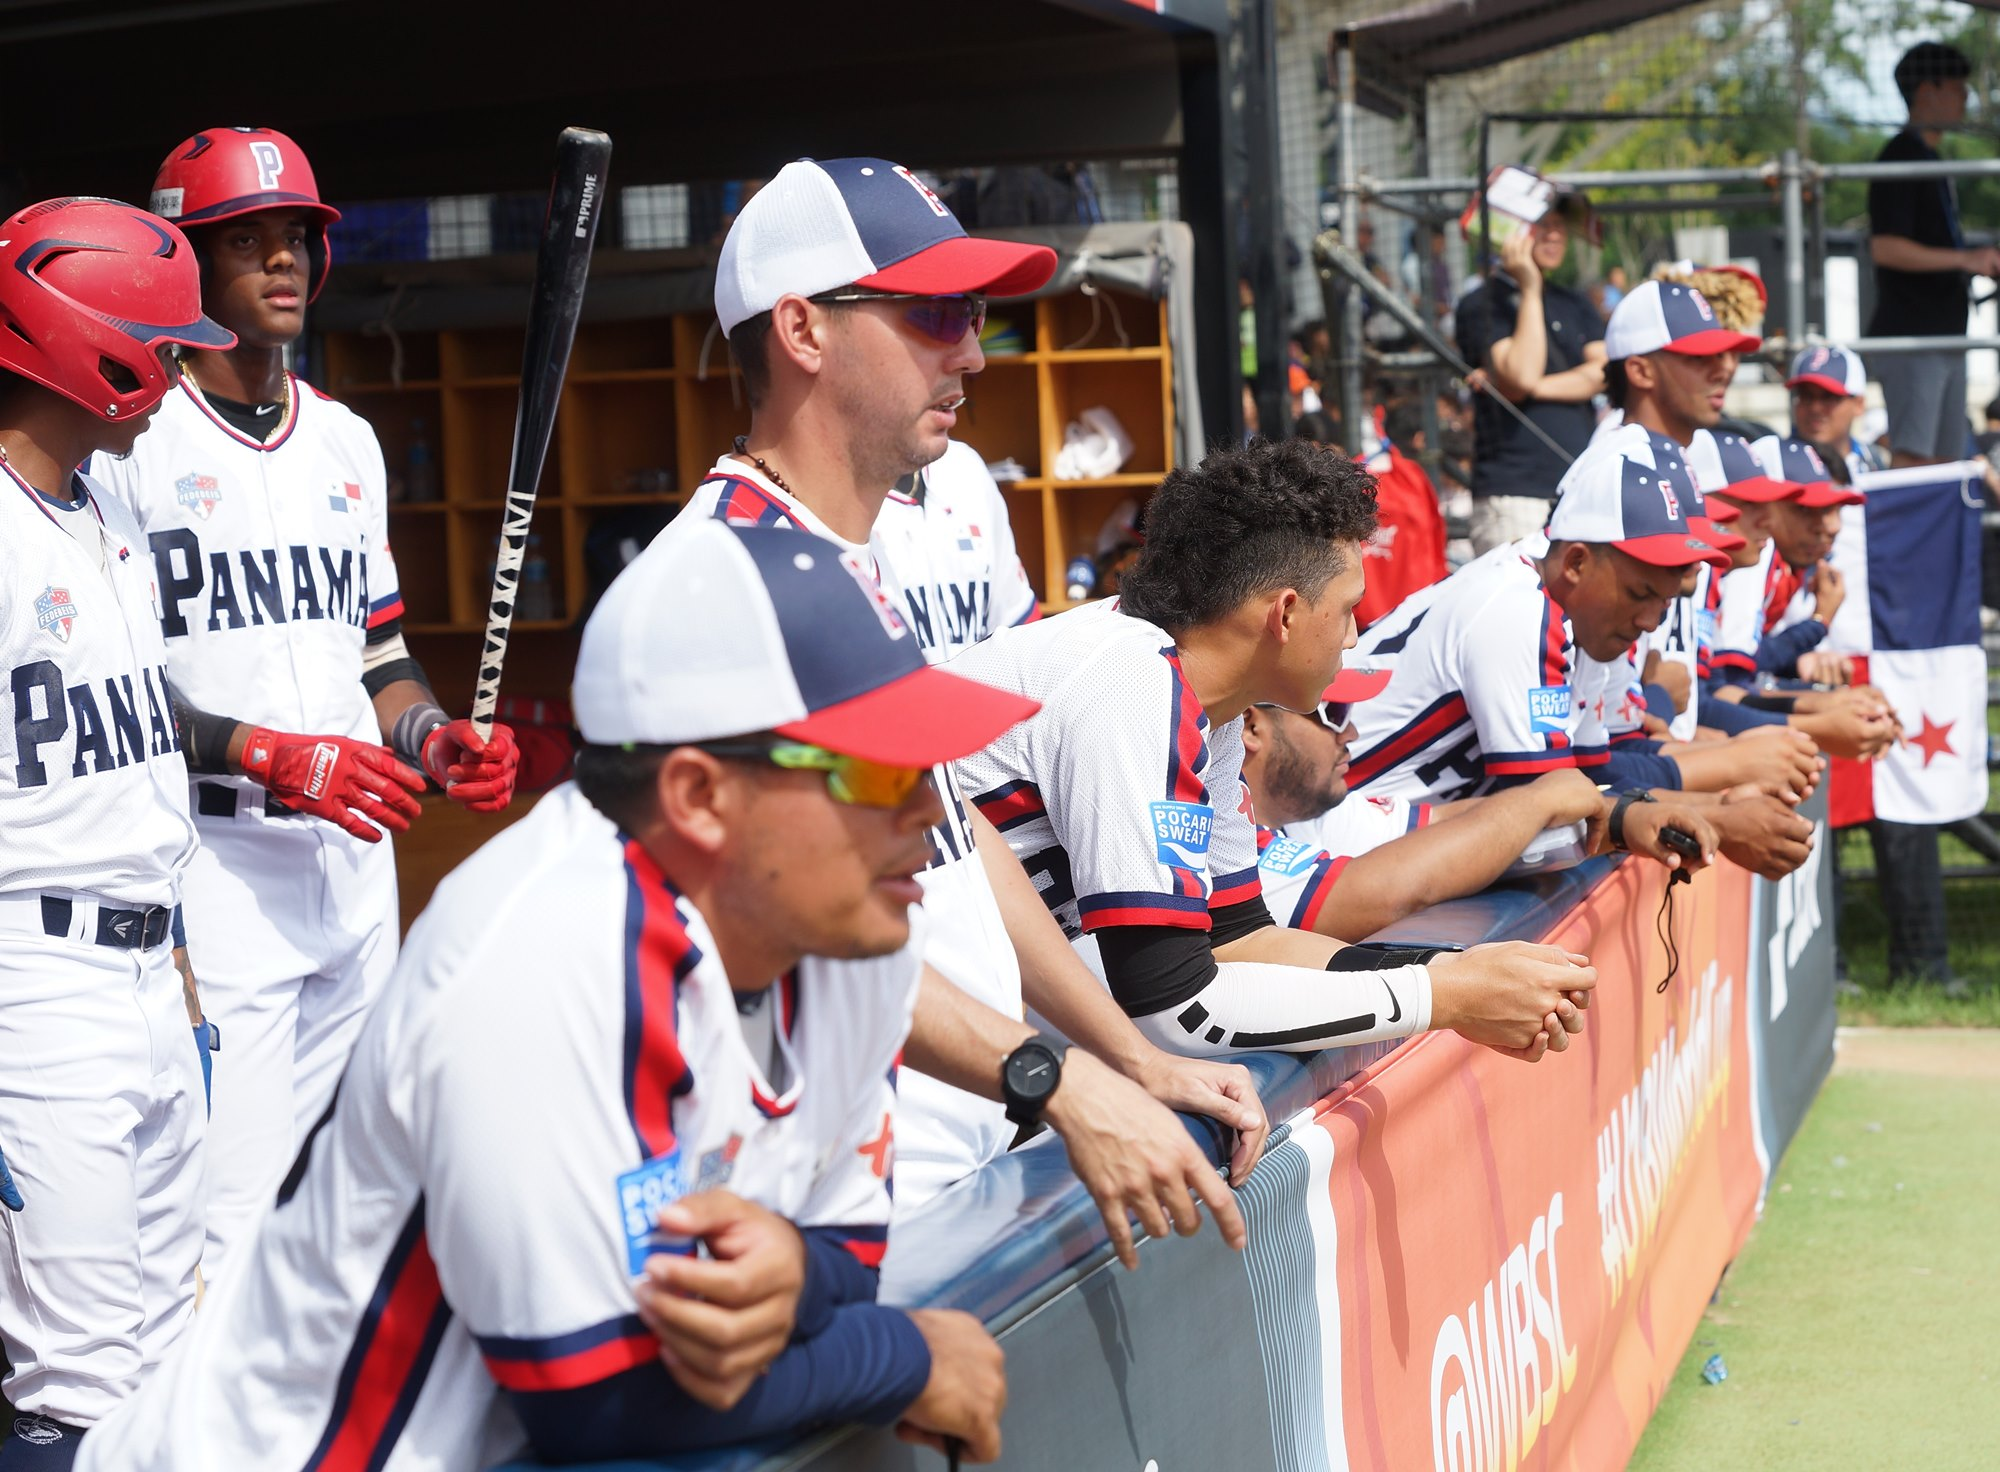 Panama's pitching didn't match expectations